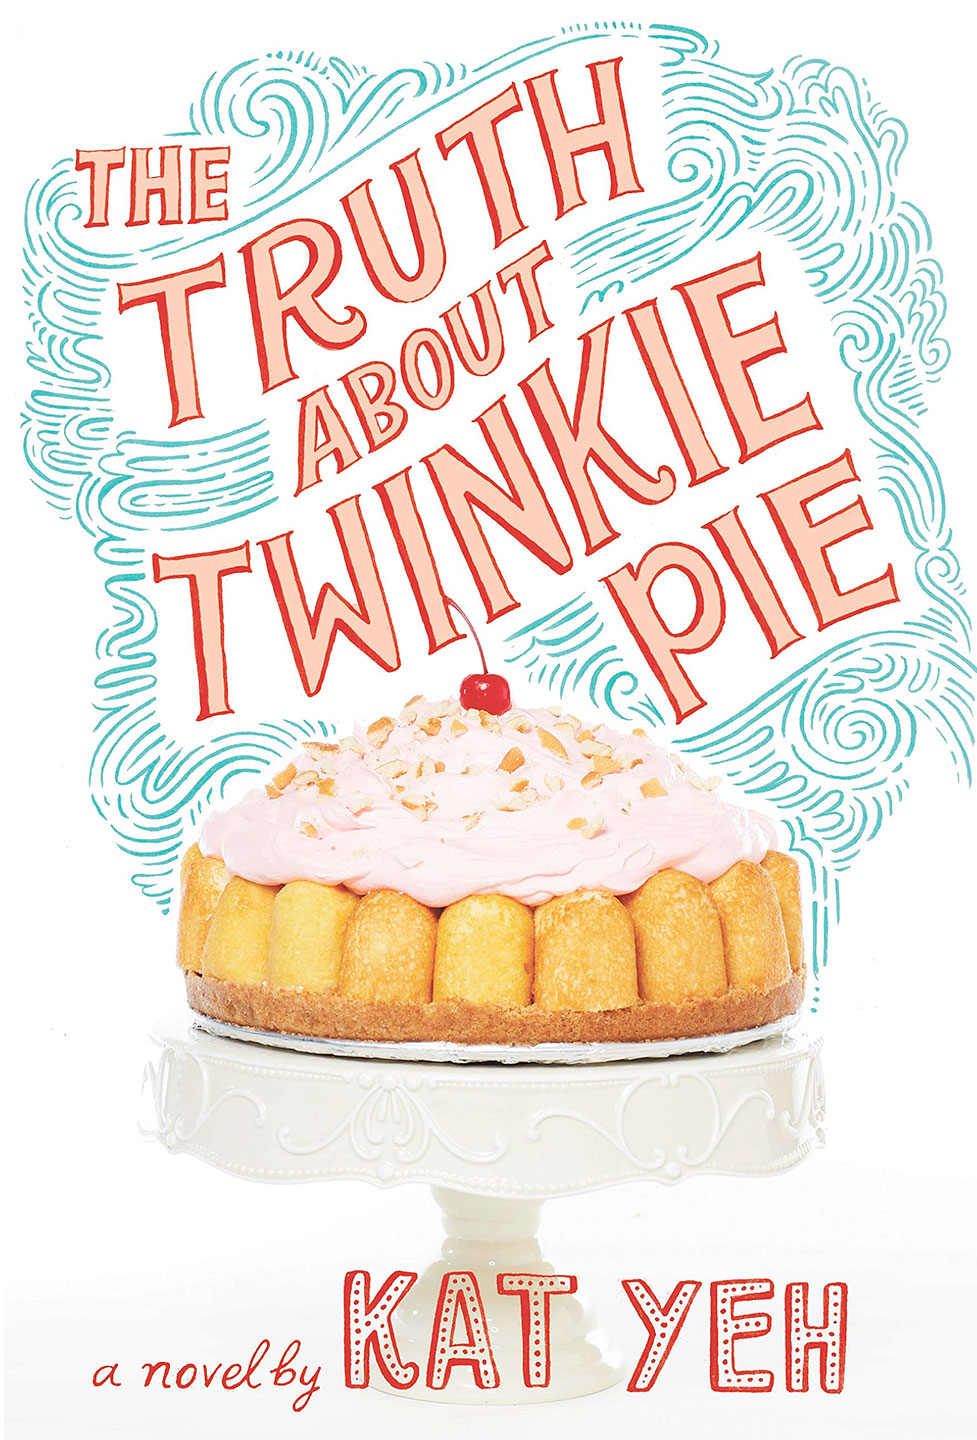 The-Truth-About-Twinkie-Pie-Howard_Huang